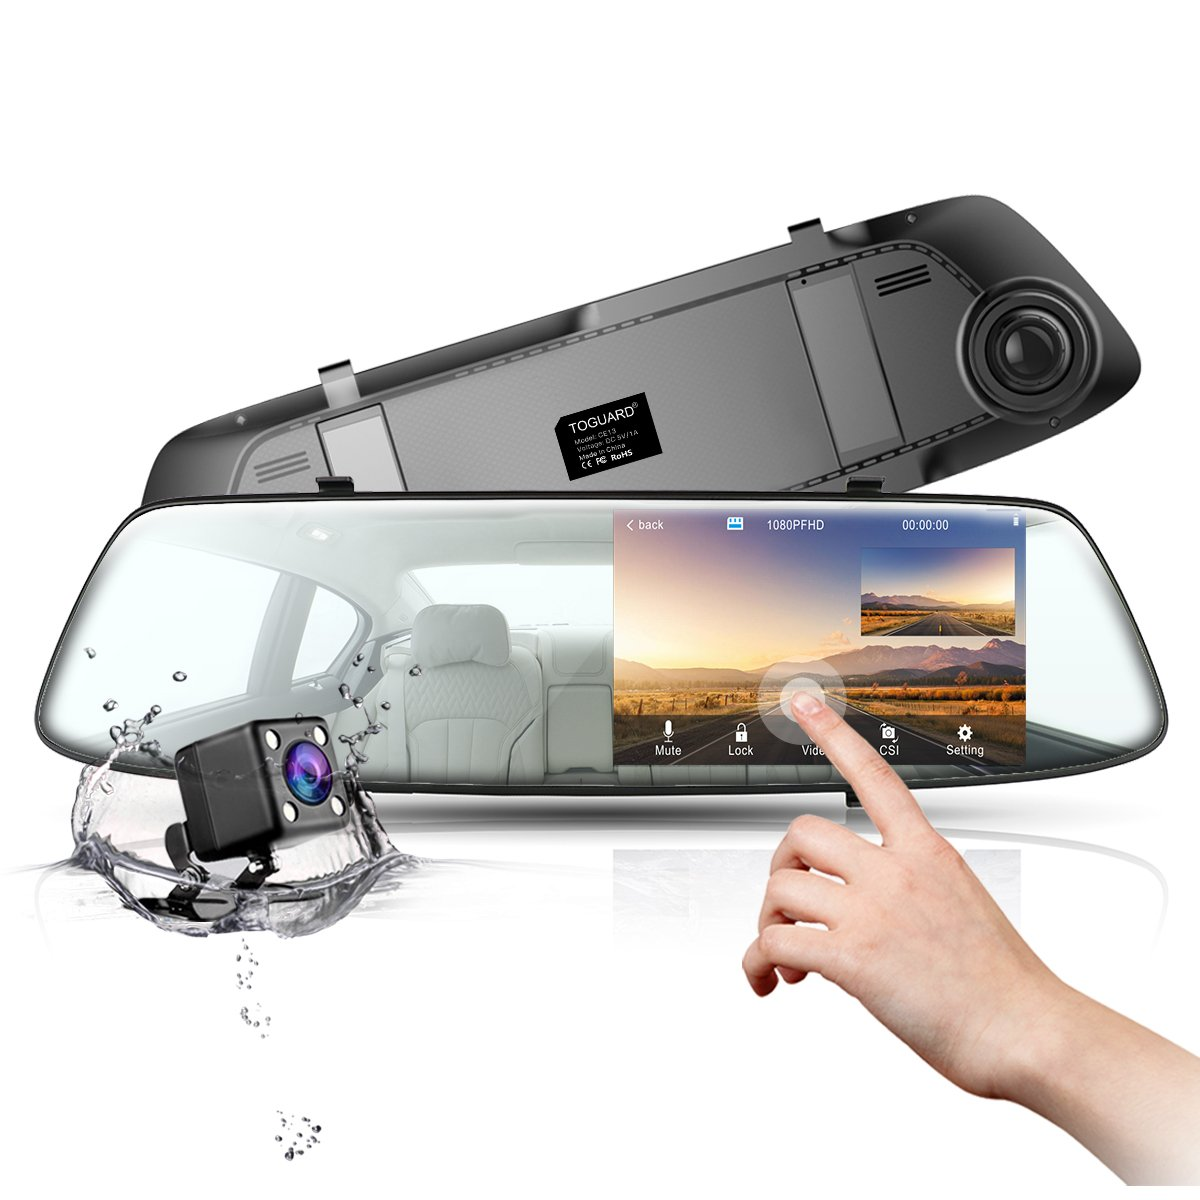 TOGUARD Backup Camera Dash Cam Rear View Mirror Dual Dash Cams 4.3 Inch Touch Screen 1080P Front Car Camera Video Recorder and with Parking Monitor G-Sensor Loop Recording